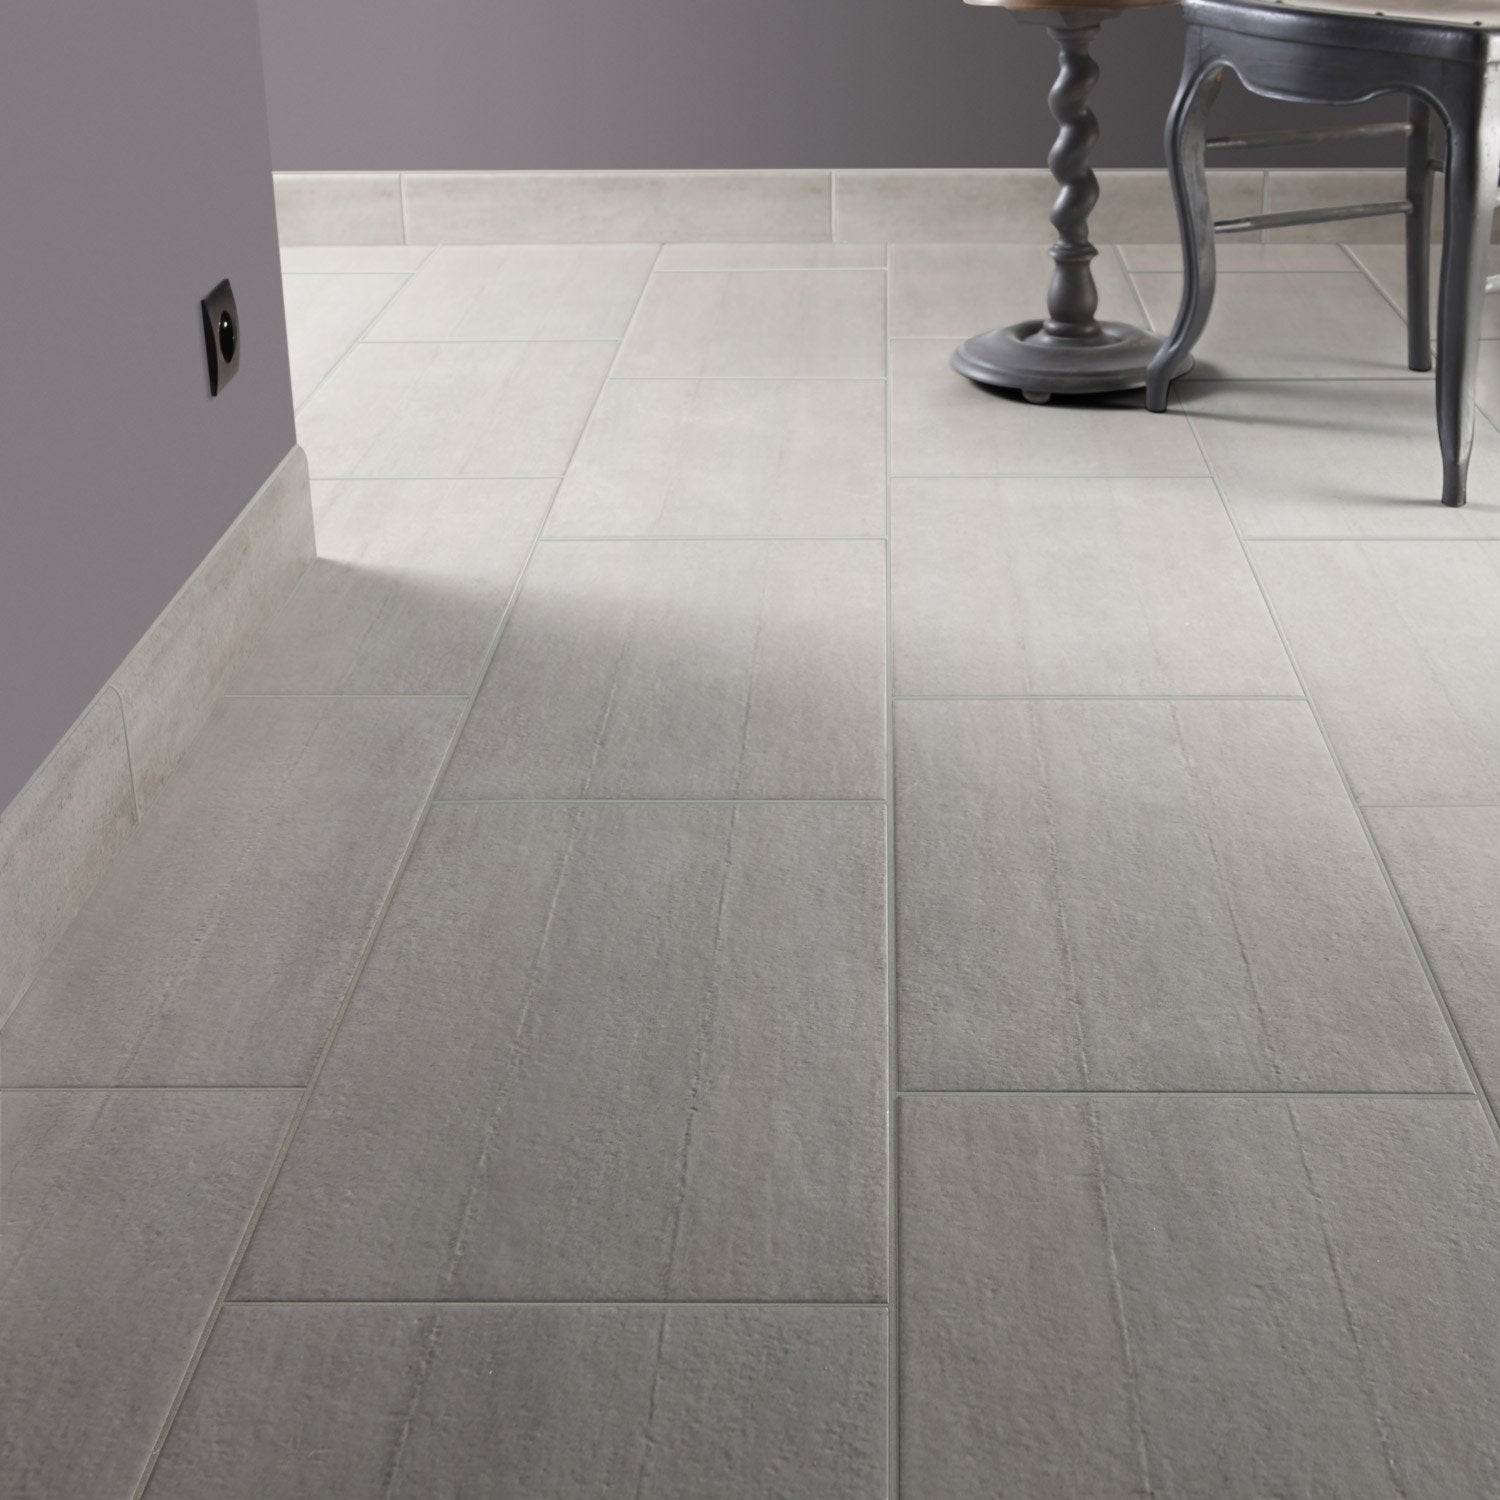 Carrelage imitation teck gris id e for Carrelage exterieur bleu